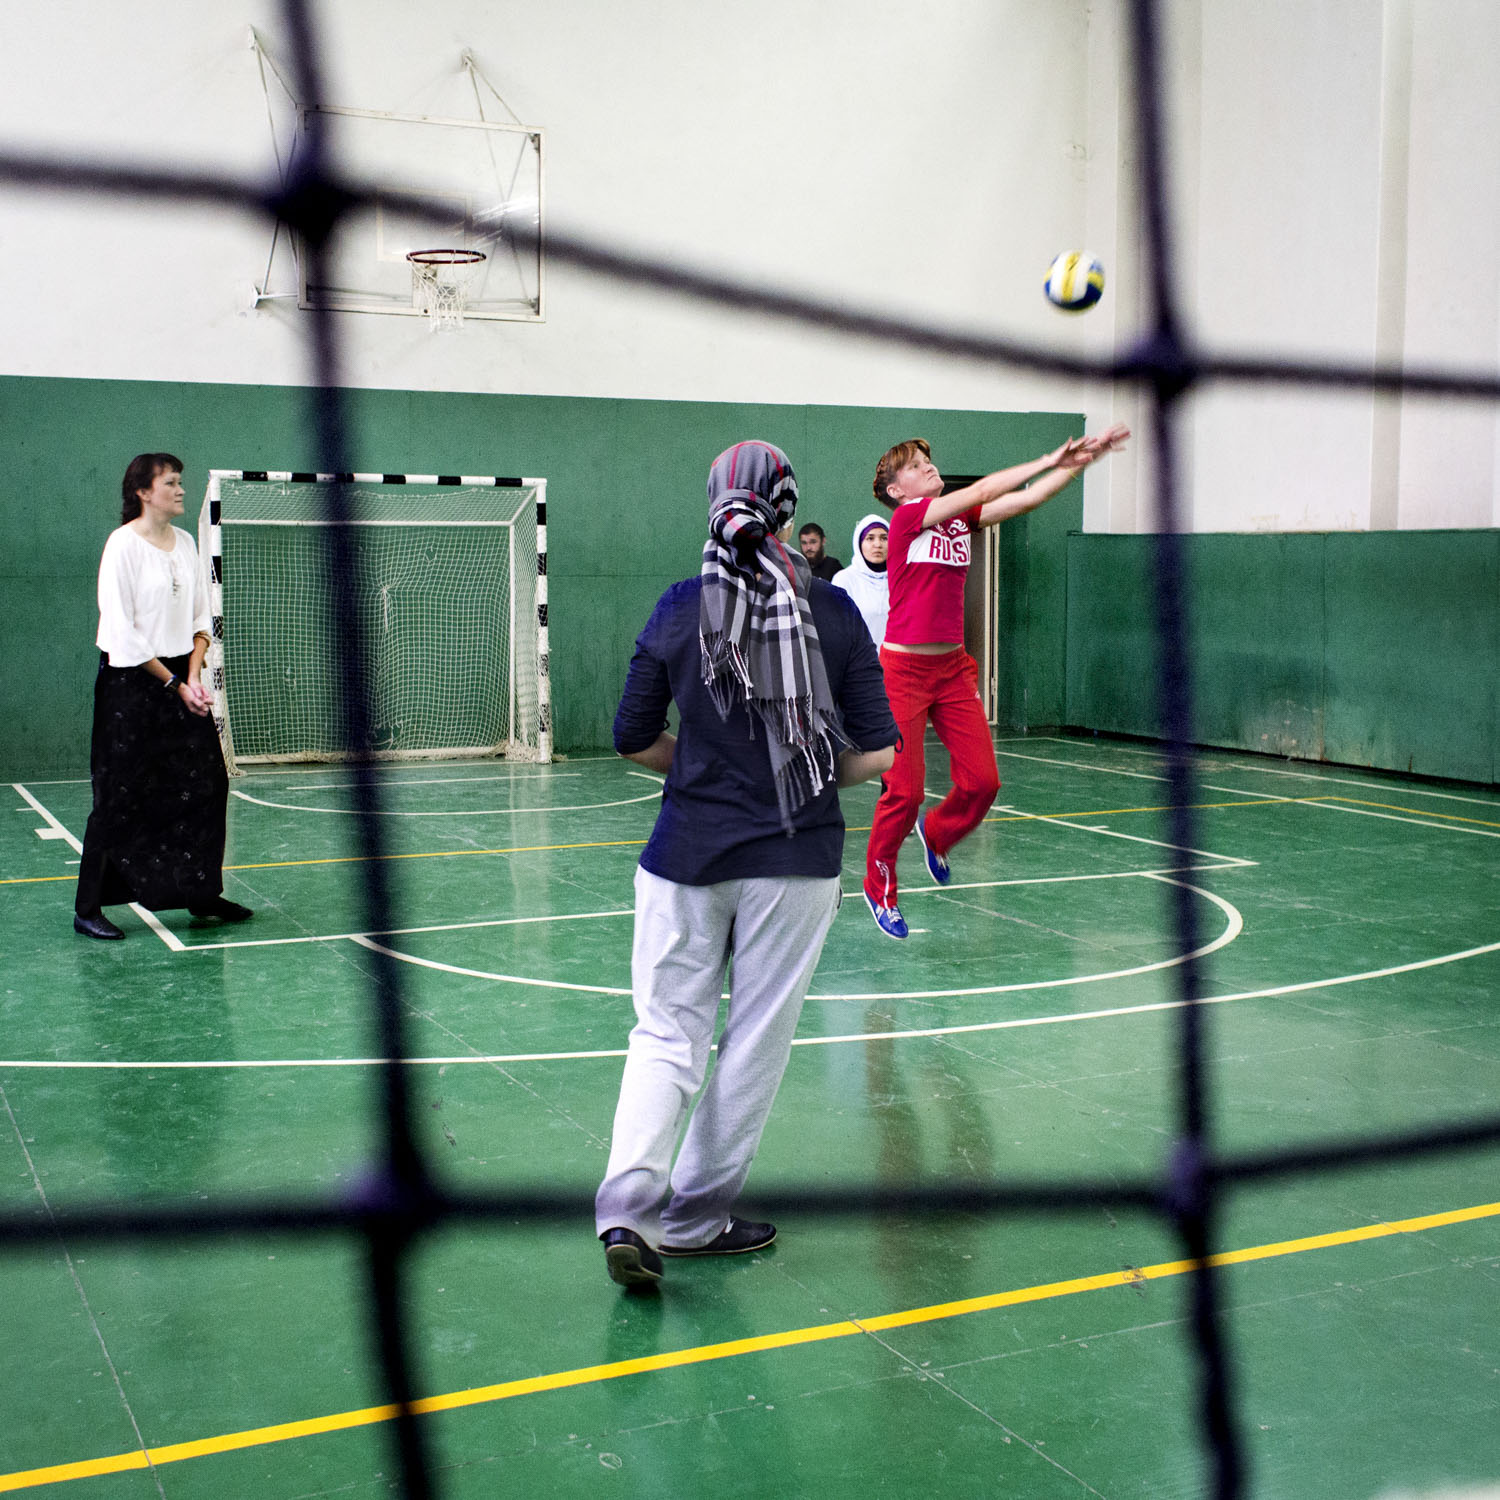 """Sports against terrorism. The games are organised by Aynur Artjom: """"We don't want to encourage competitive thinking between the religions, so we mix the teams."""""""